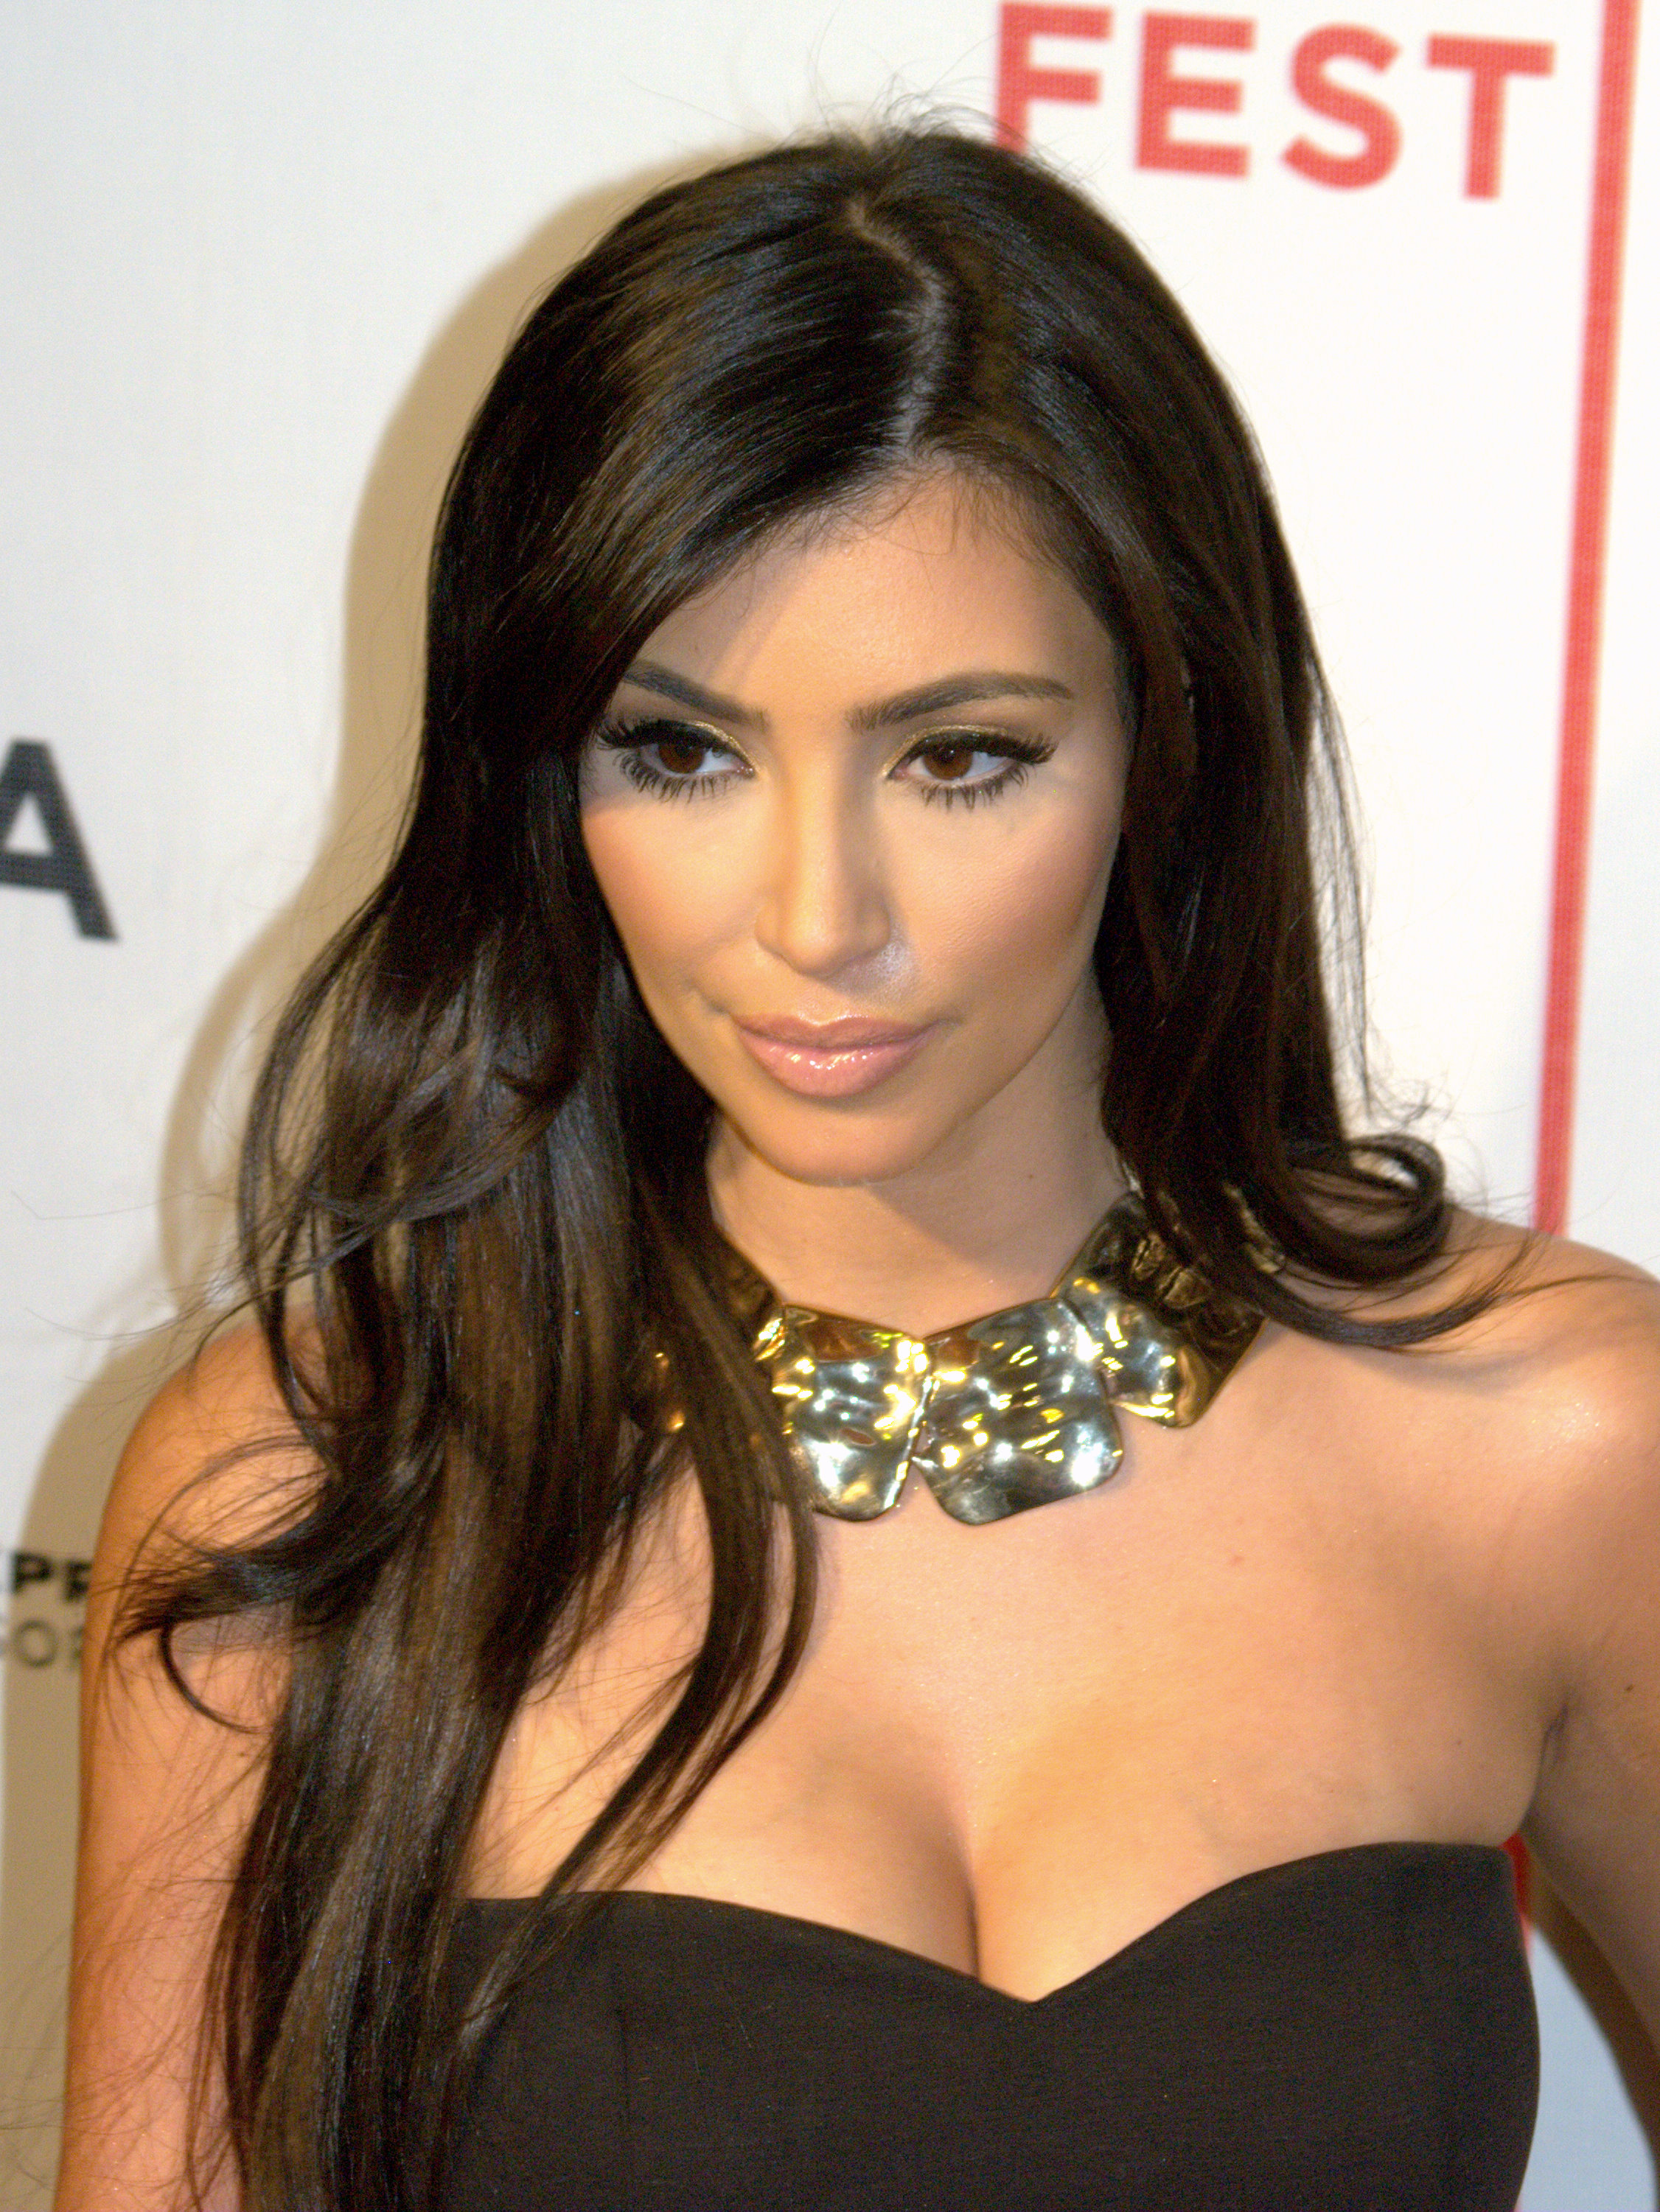 Description Kim Kardashian portrait 2009.jpg